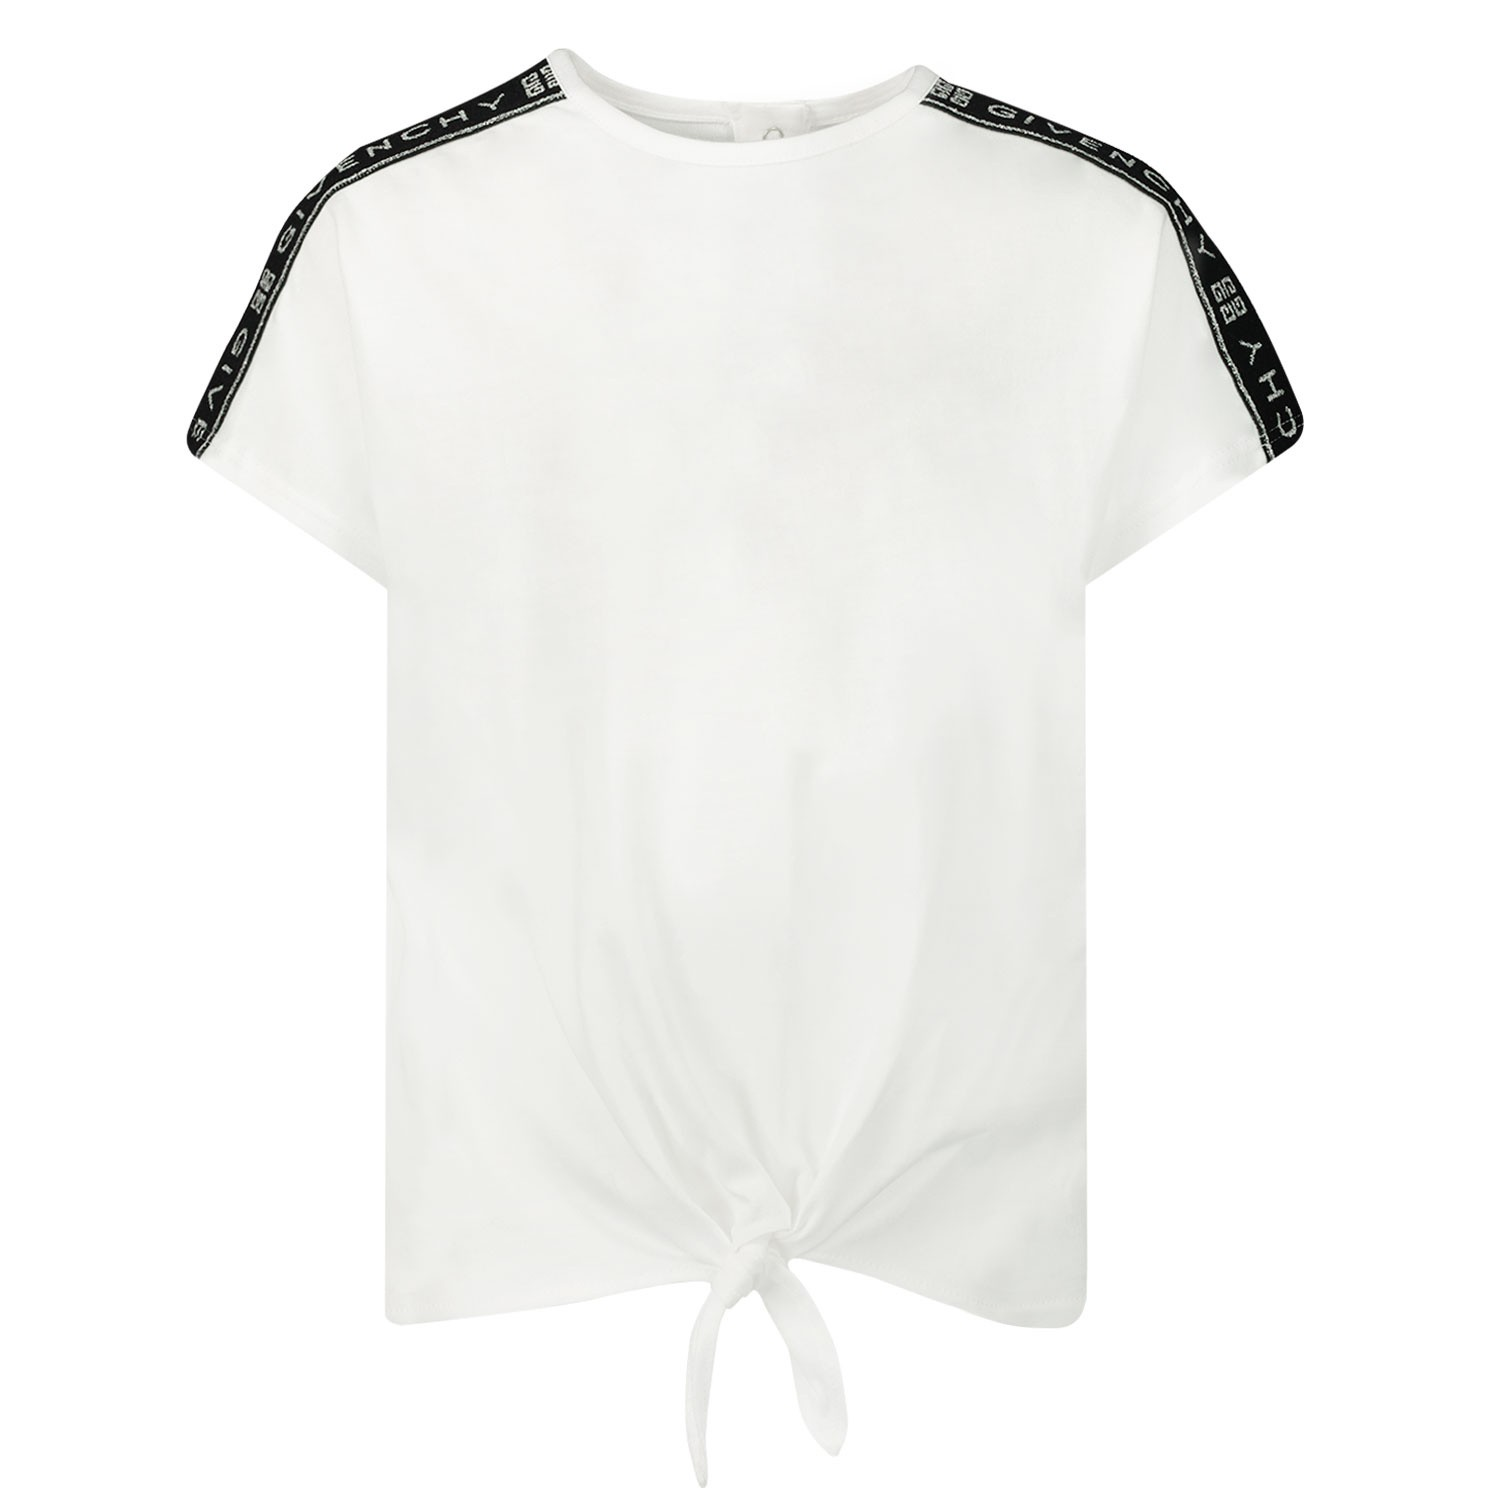 Afbeelding van Givenchy H05123 baby t-shirt wit